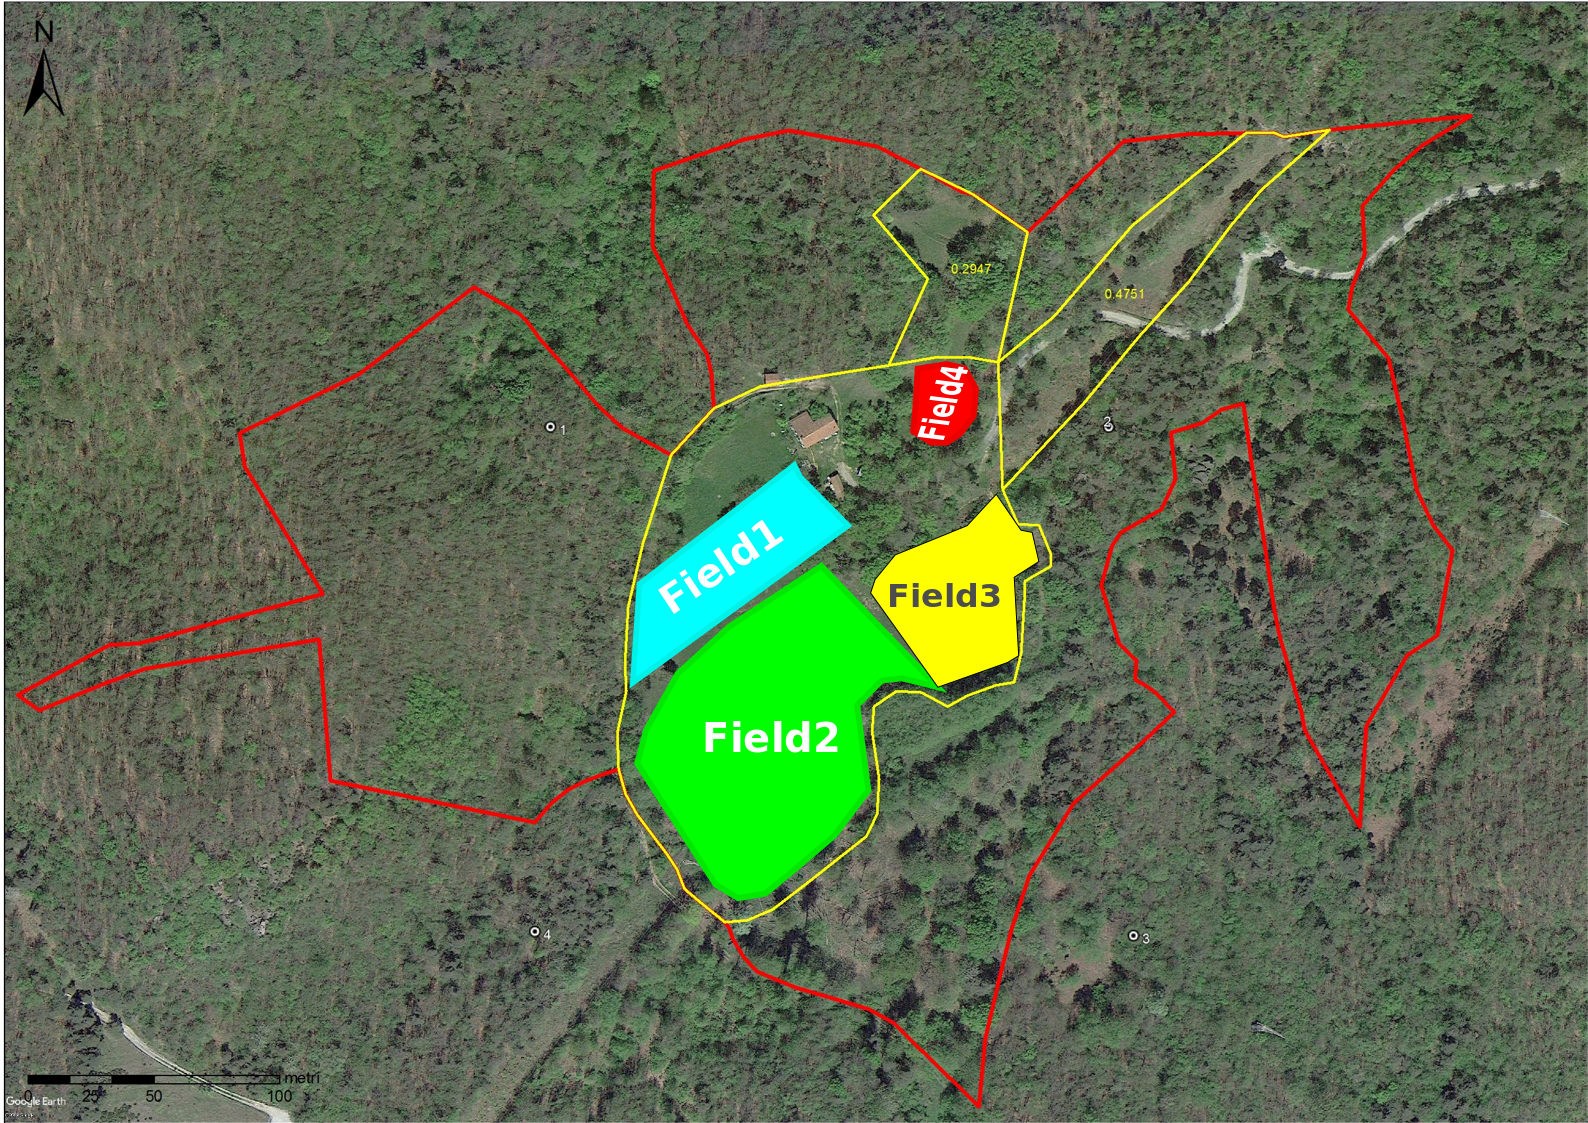 These are the areas to develop with this design for a total of 2 hectares circa